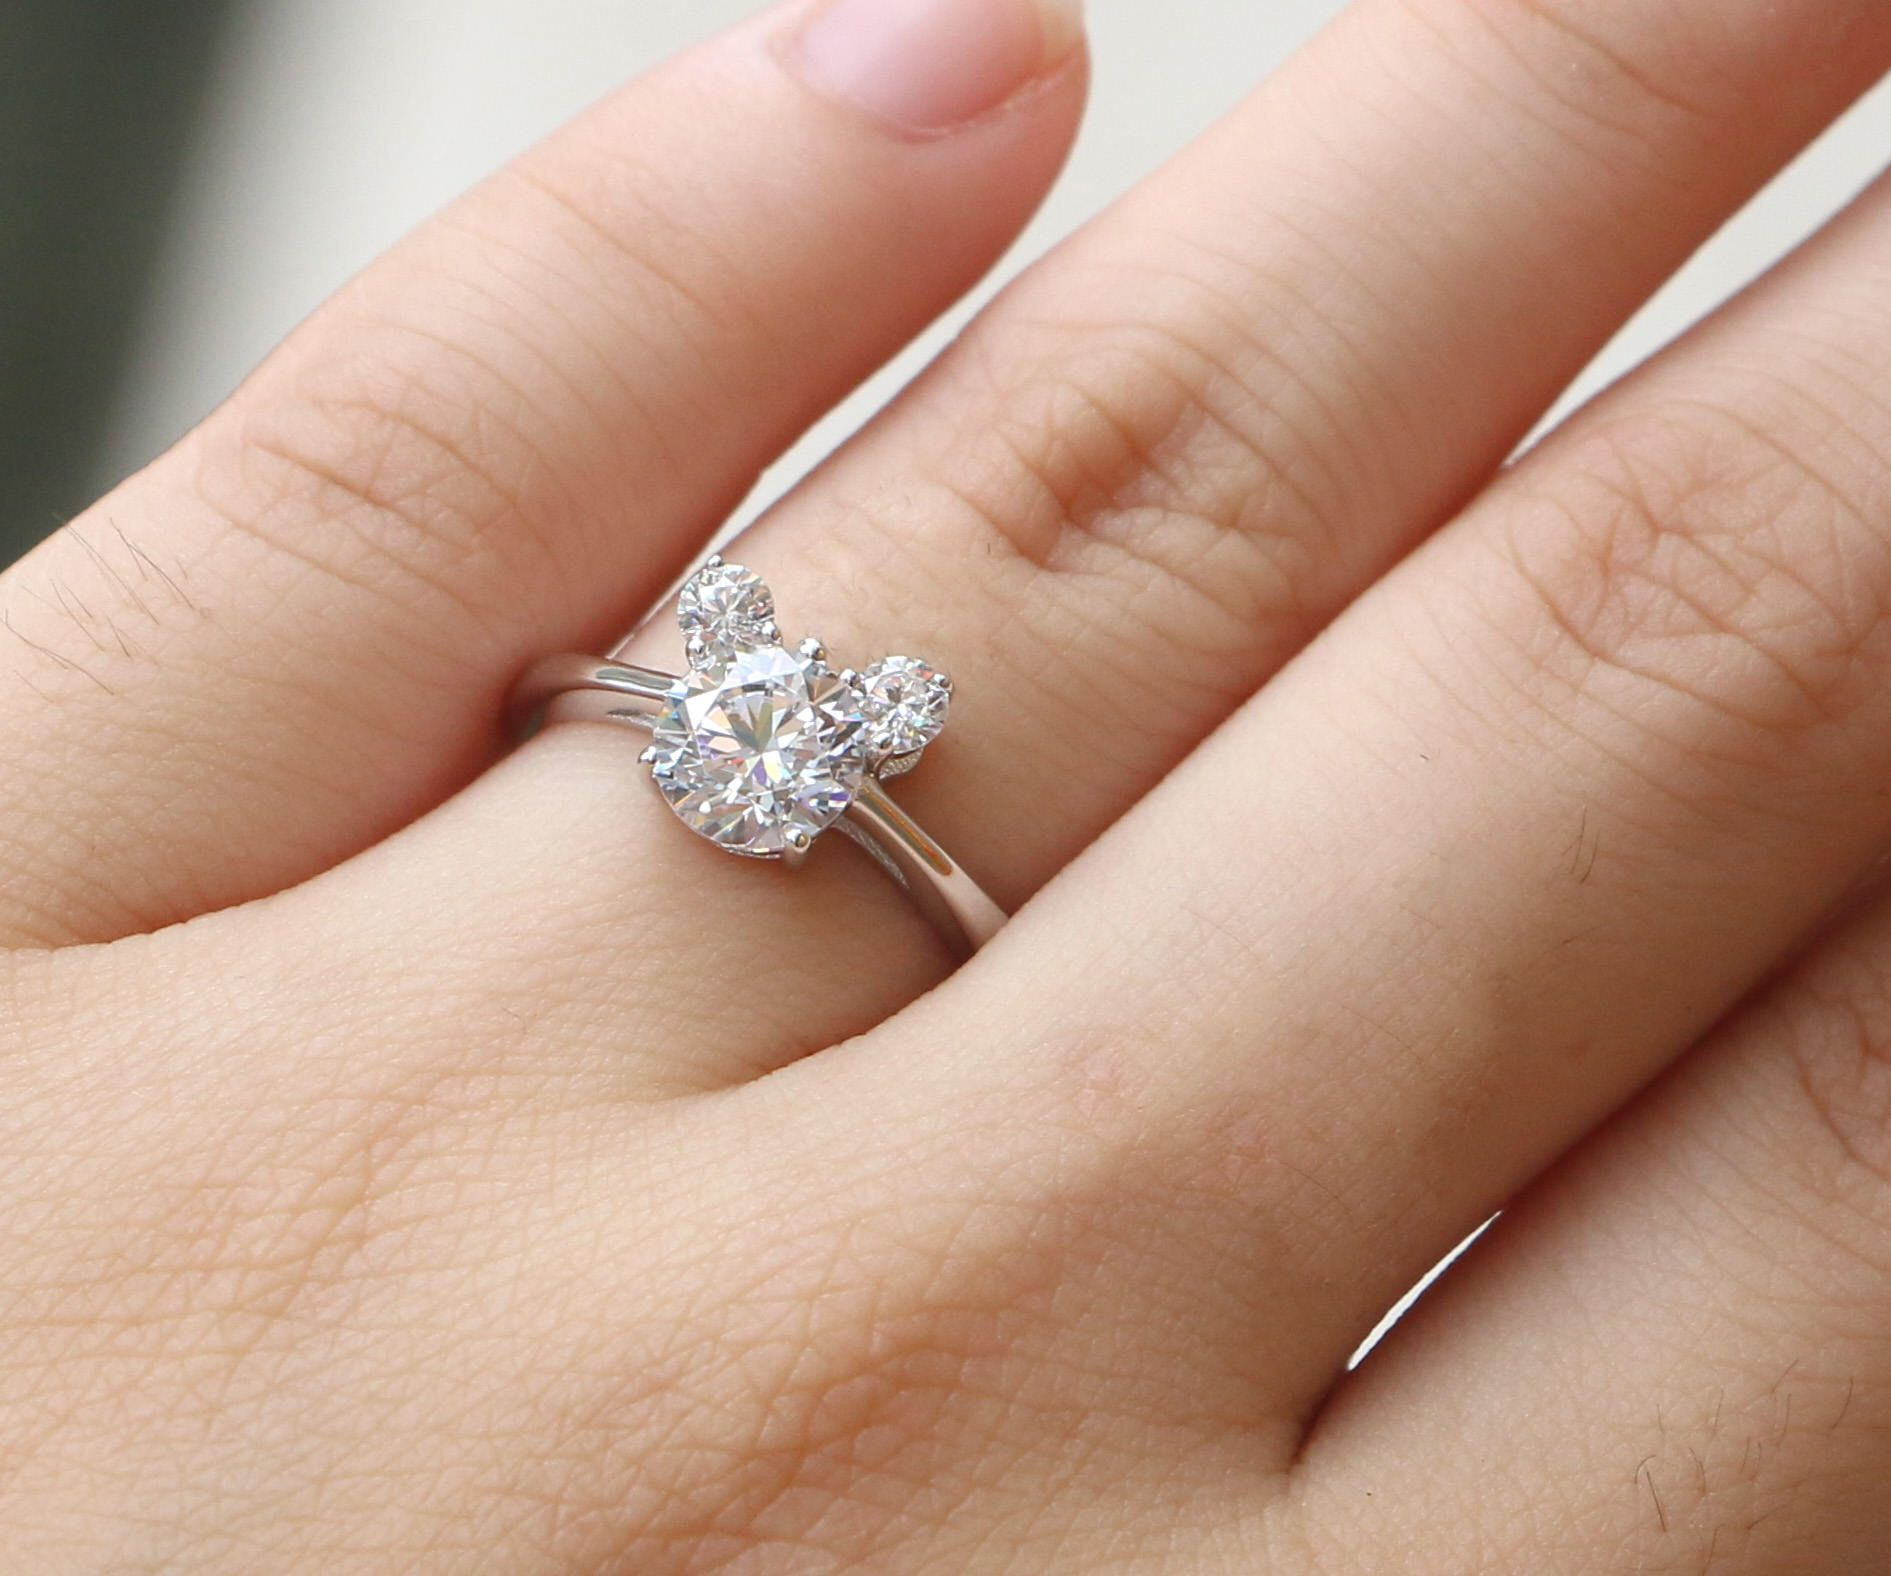 Unique Engagement Ring Micky mouse ring 3 stones ring Wedding